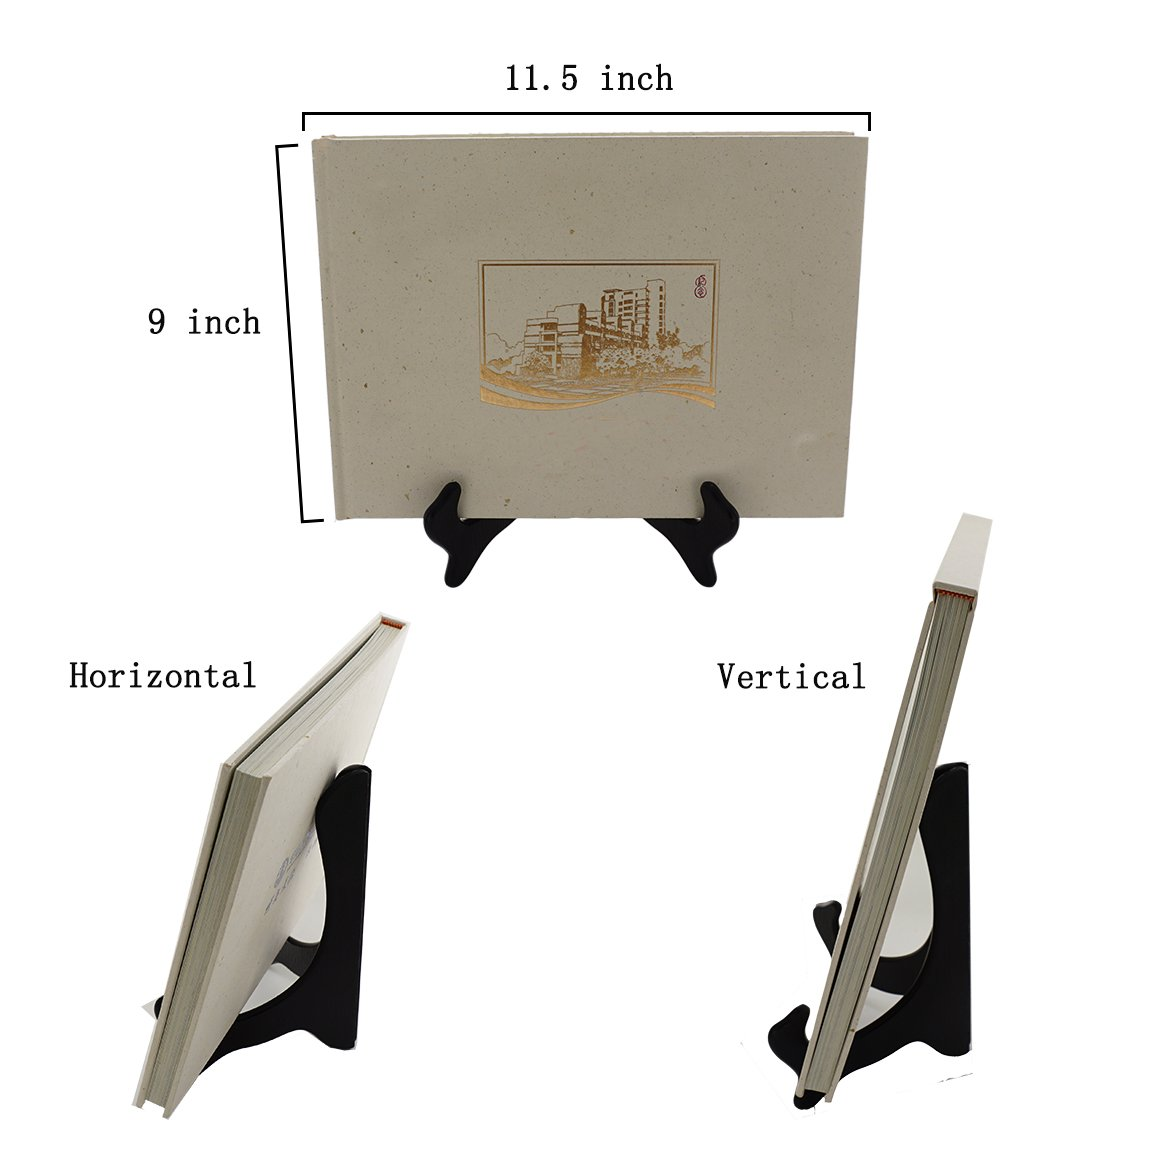 Artliving Black 8 Inch Wood-like Easels Plate Stand Holder Display Stands Picture Frame Stand-Set of 2 by Artliving (Image #6)